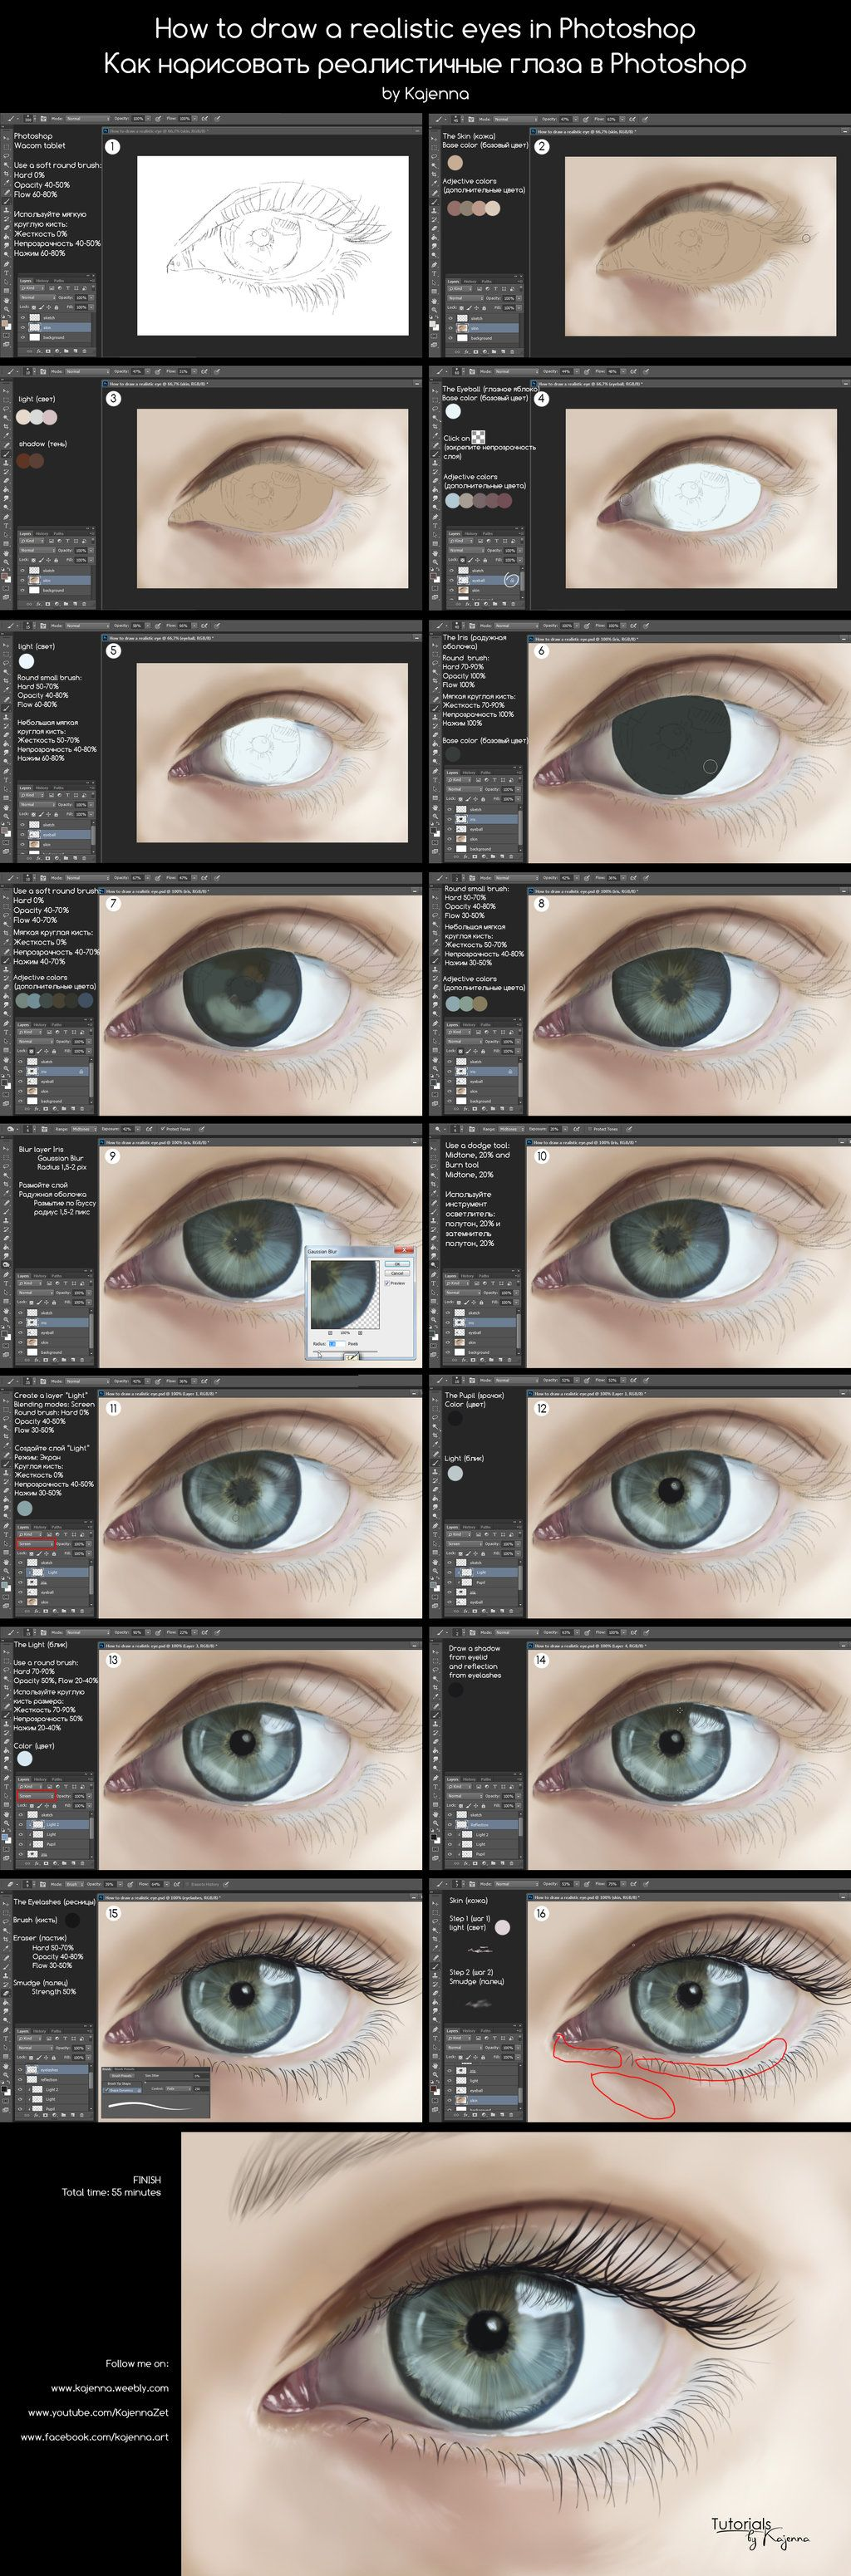 how to draw a realistic eyes in photoshop by kajenna deviantart com on